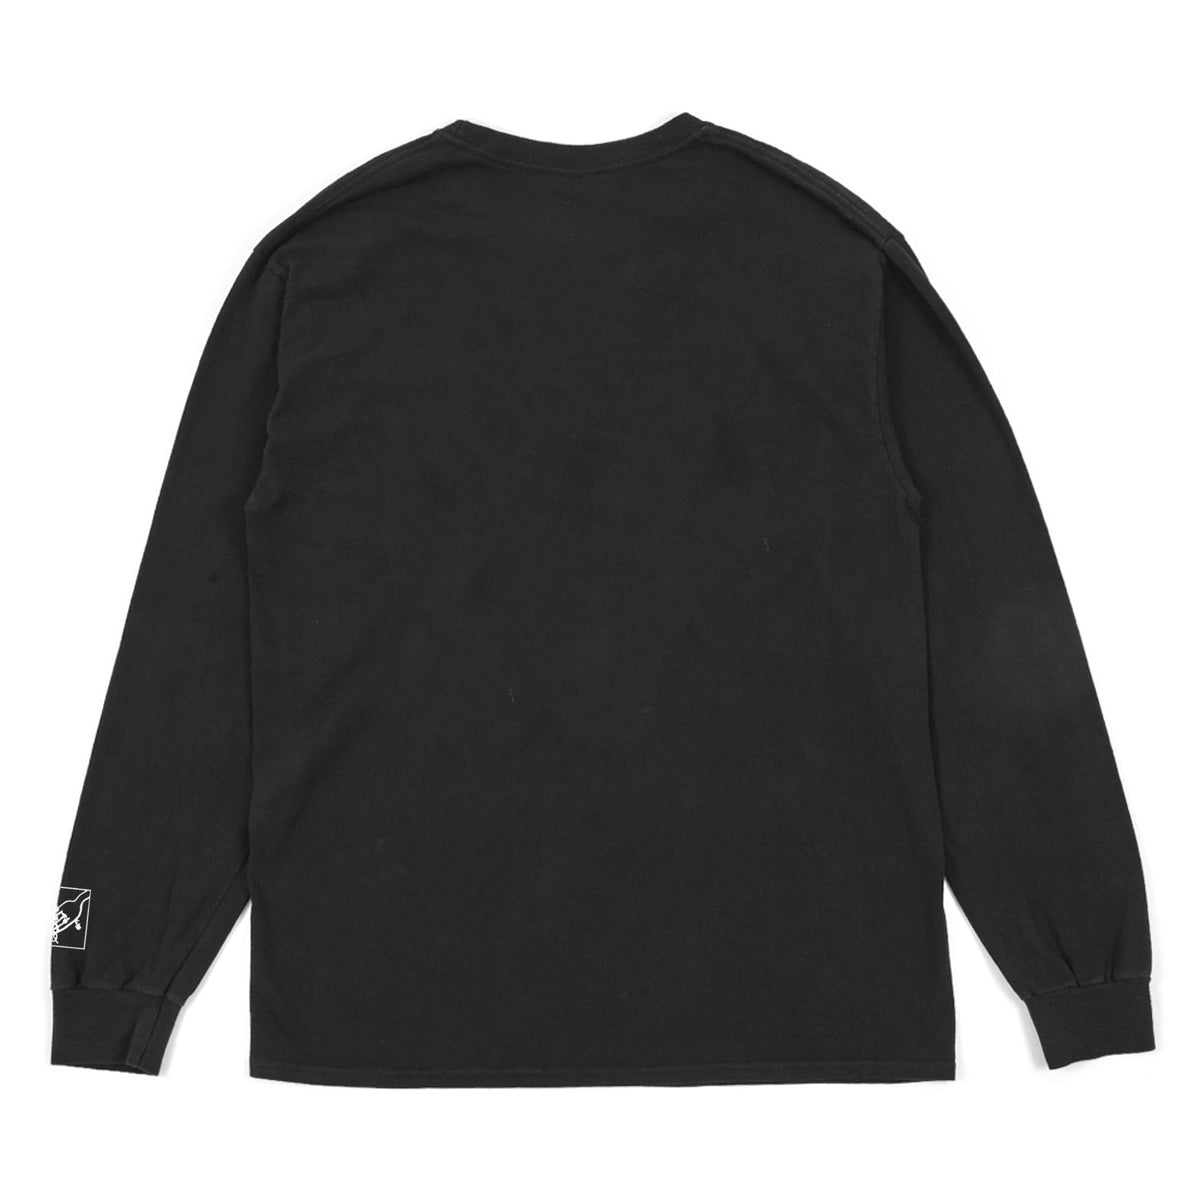 SOUND NUTRITION - L/S TEE - BLACK